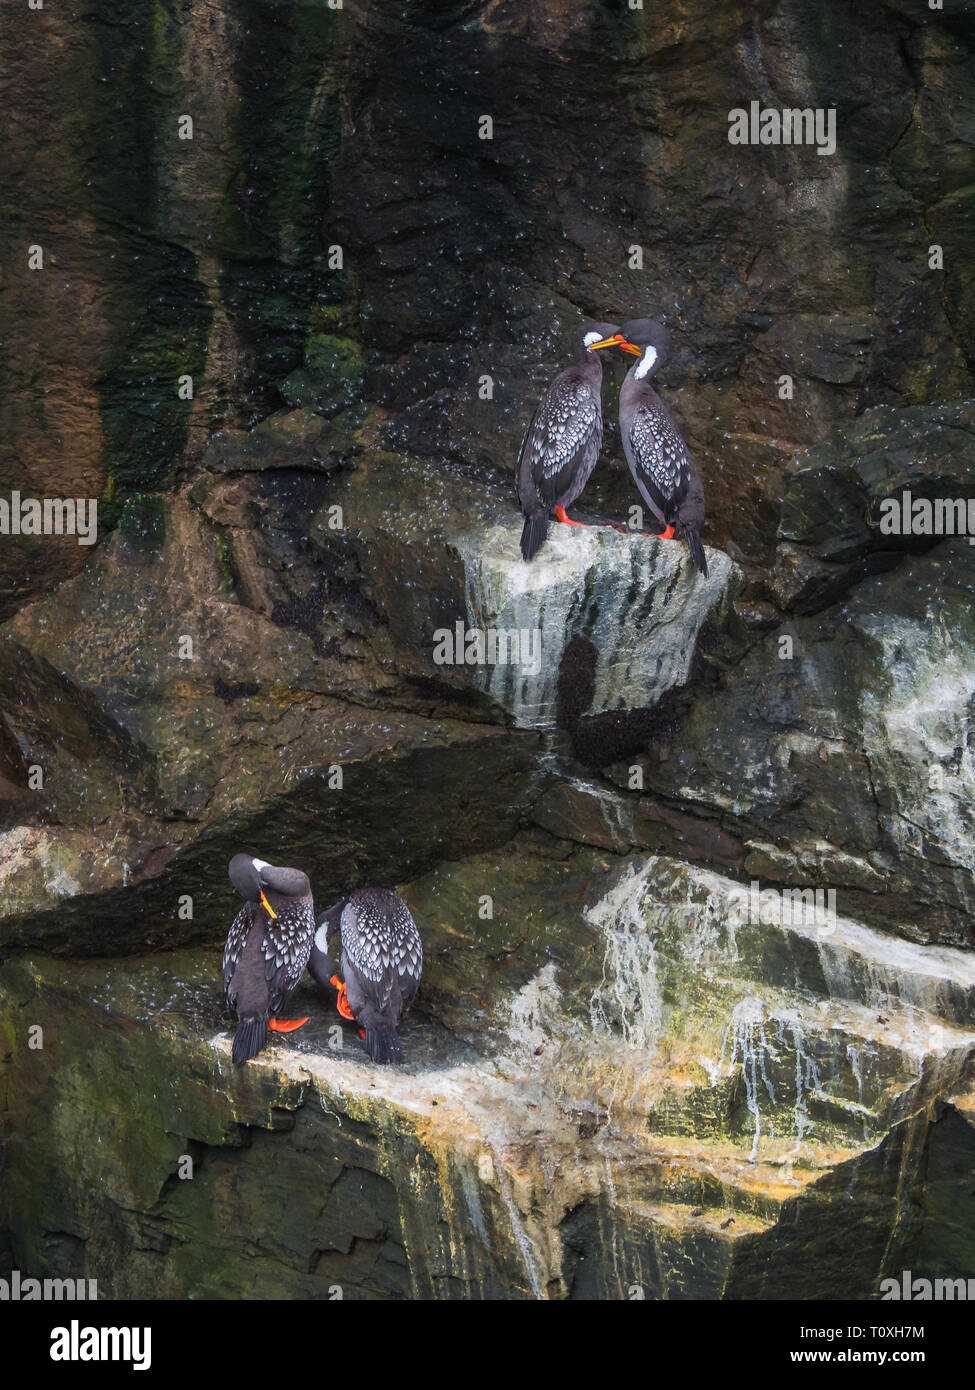 Couples of Lille cormorant in a cliff, Humboldt Penguin National Park in Punta de Choros, Chile. La Serena Stock Photo